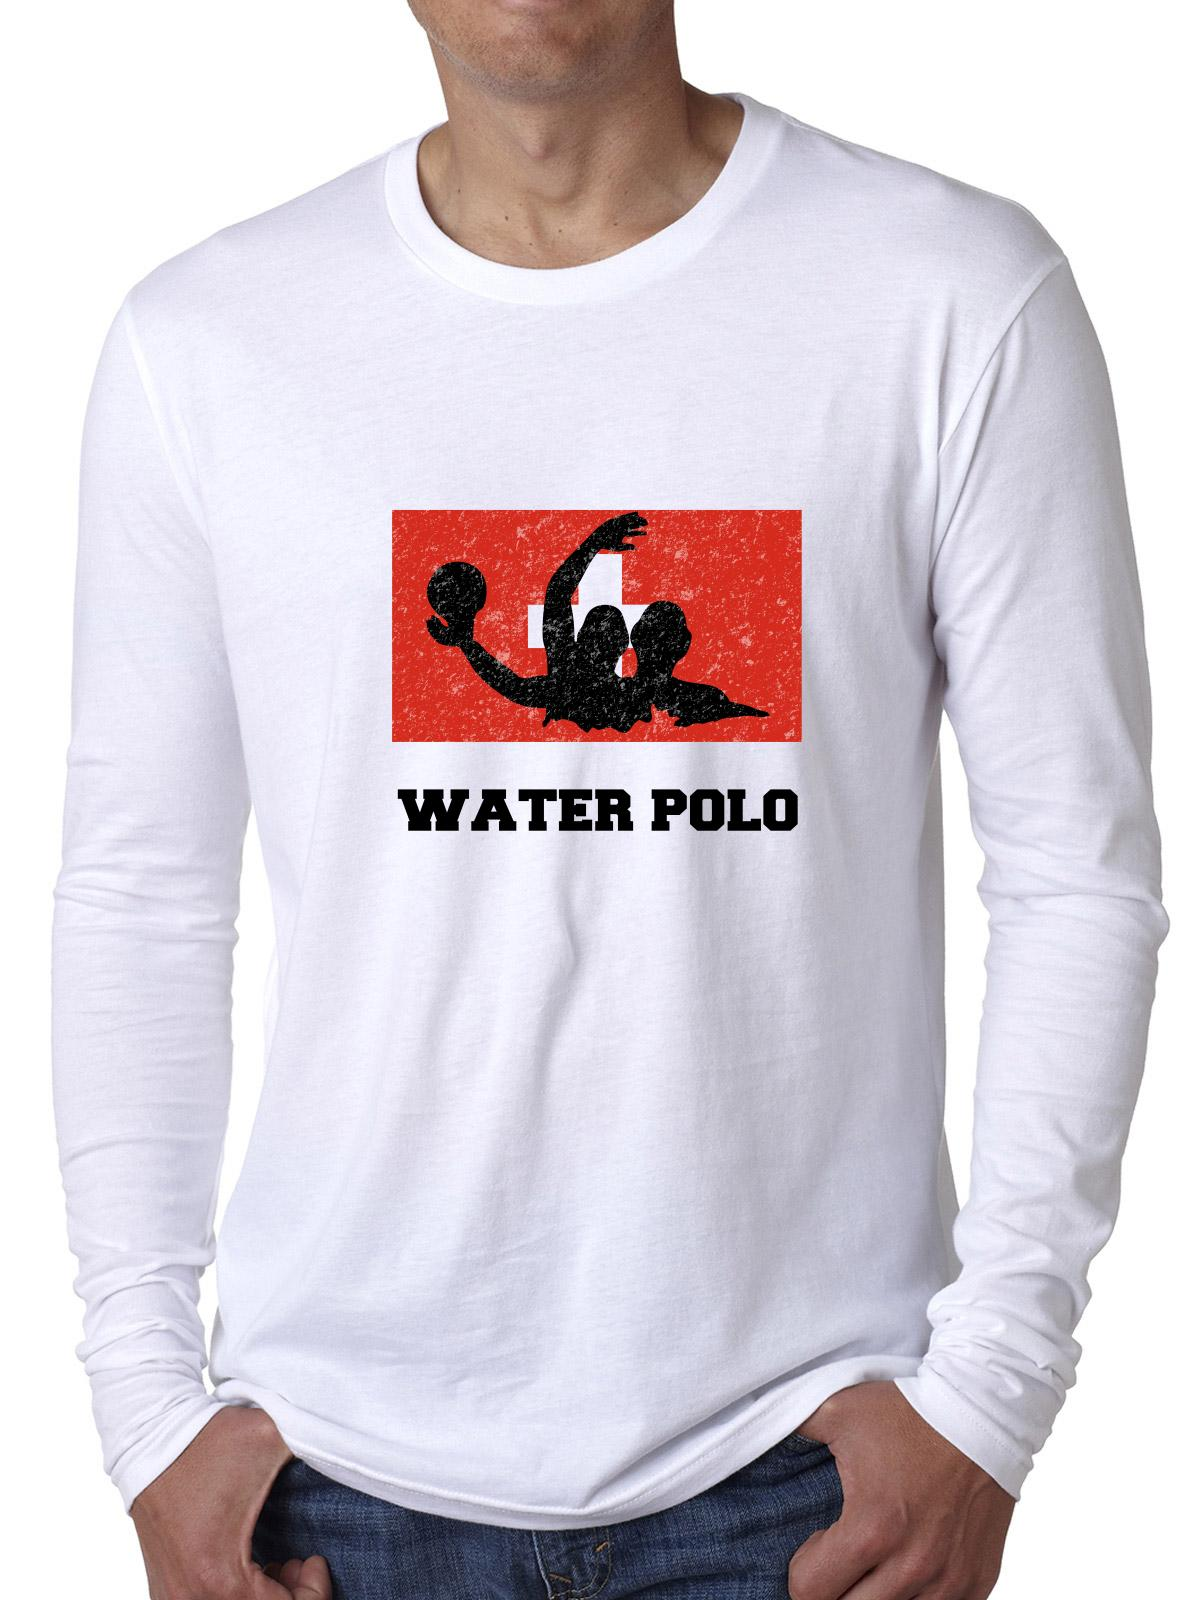 Switzerland Olympic Water Polo Flag Silhouette Men's Long Sleeve T-Shirt by Hollywood Thread